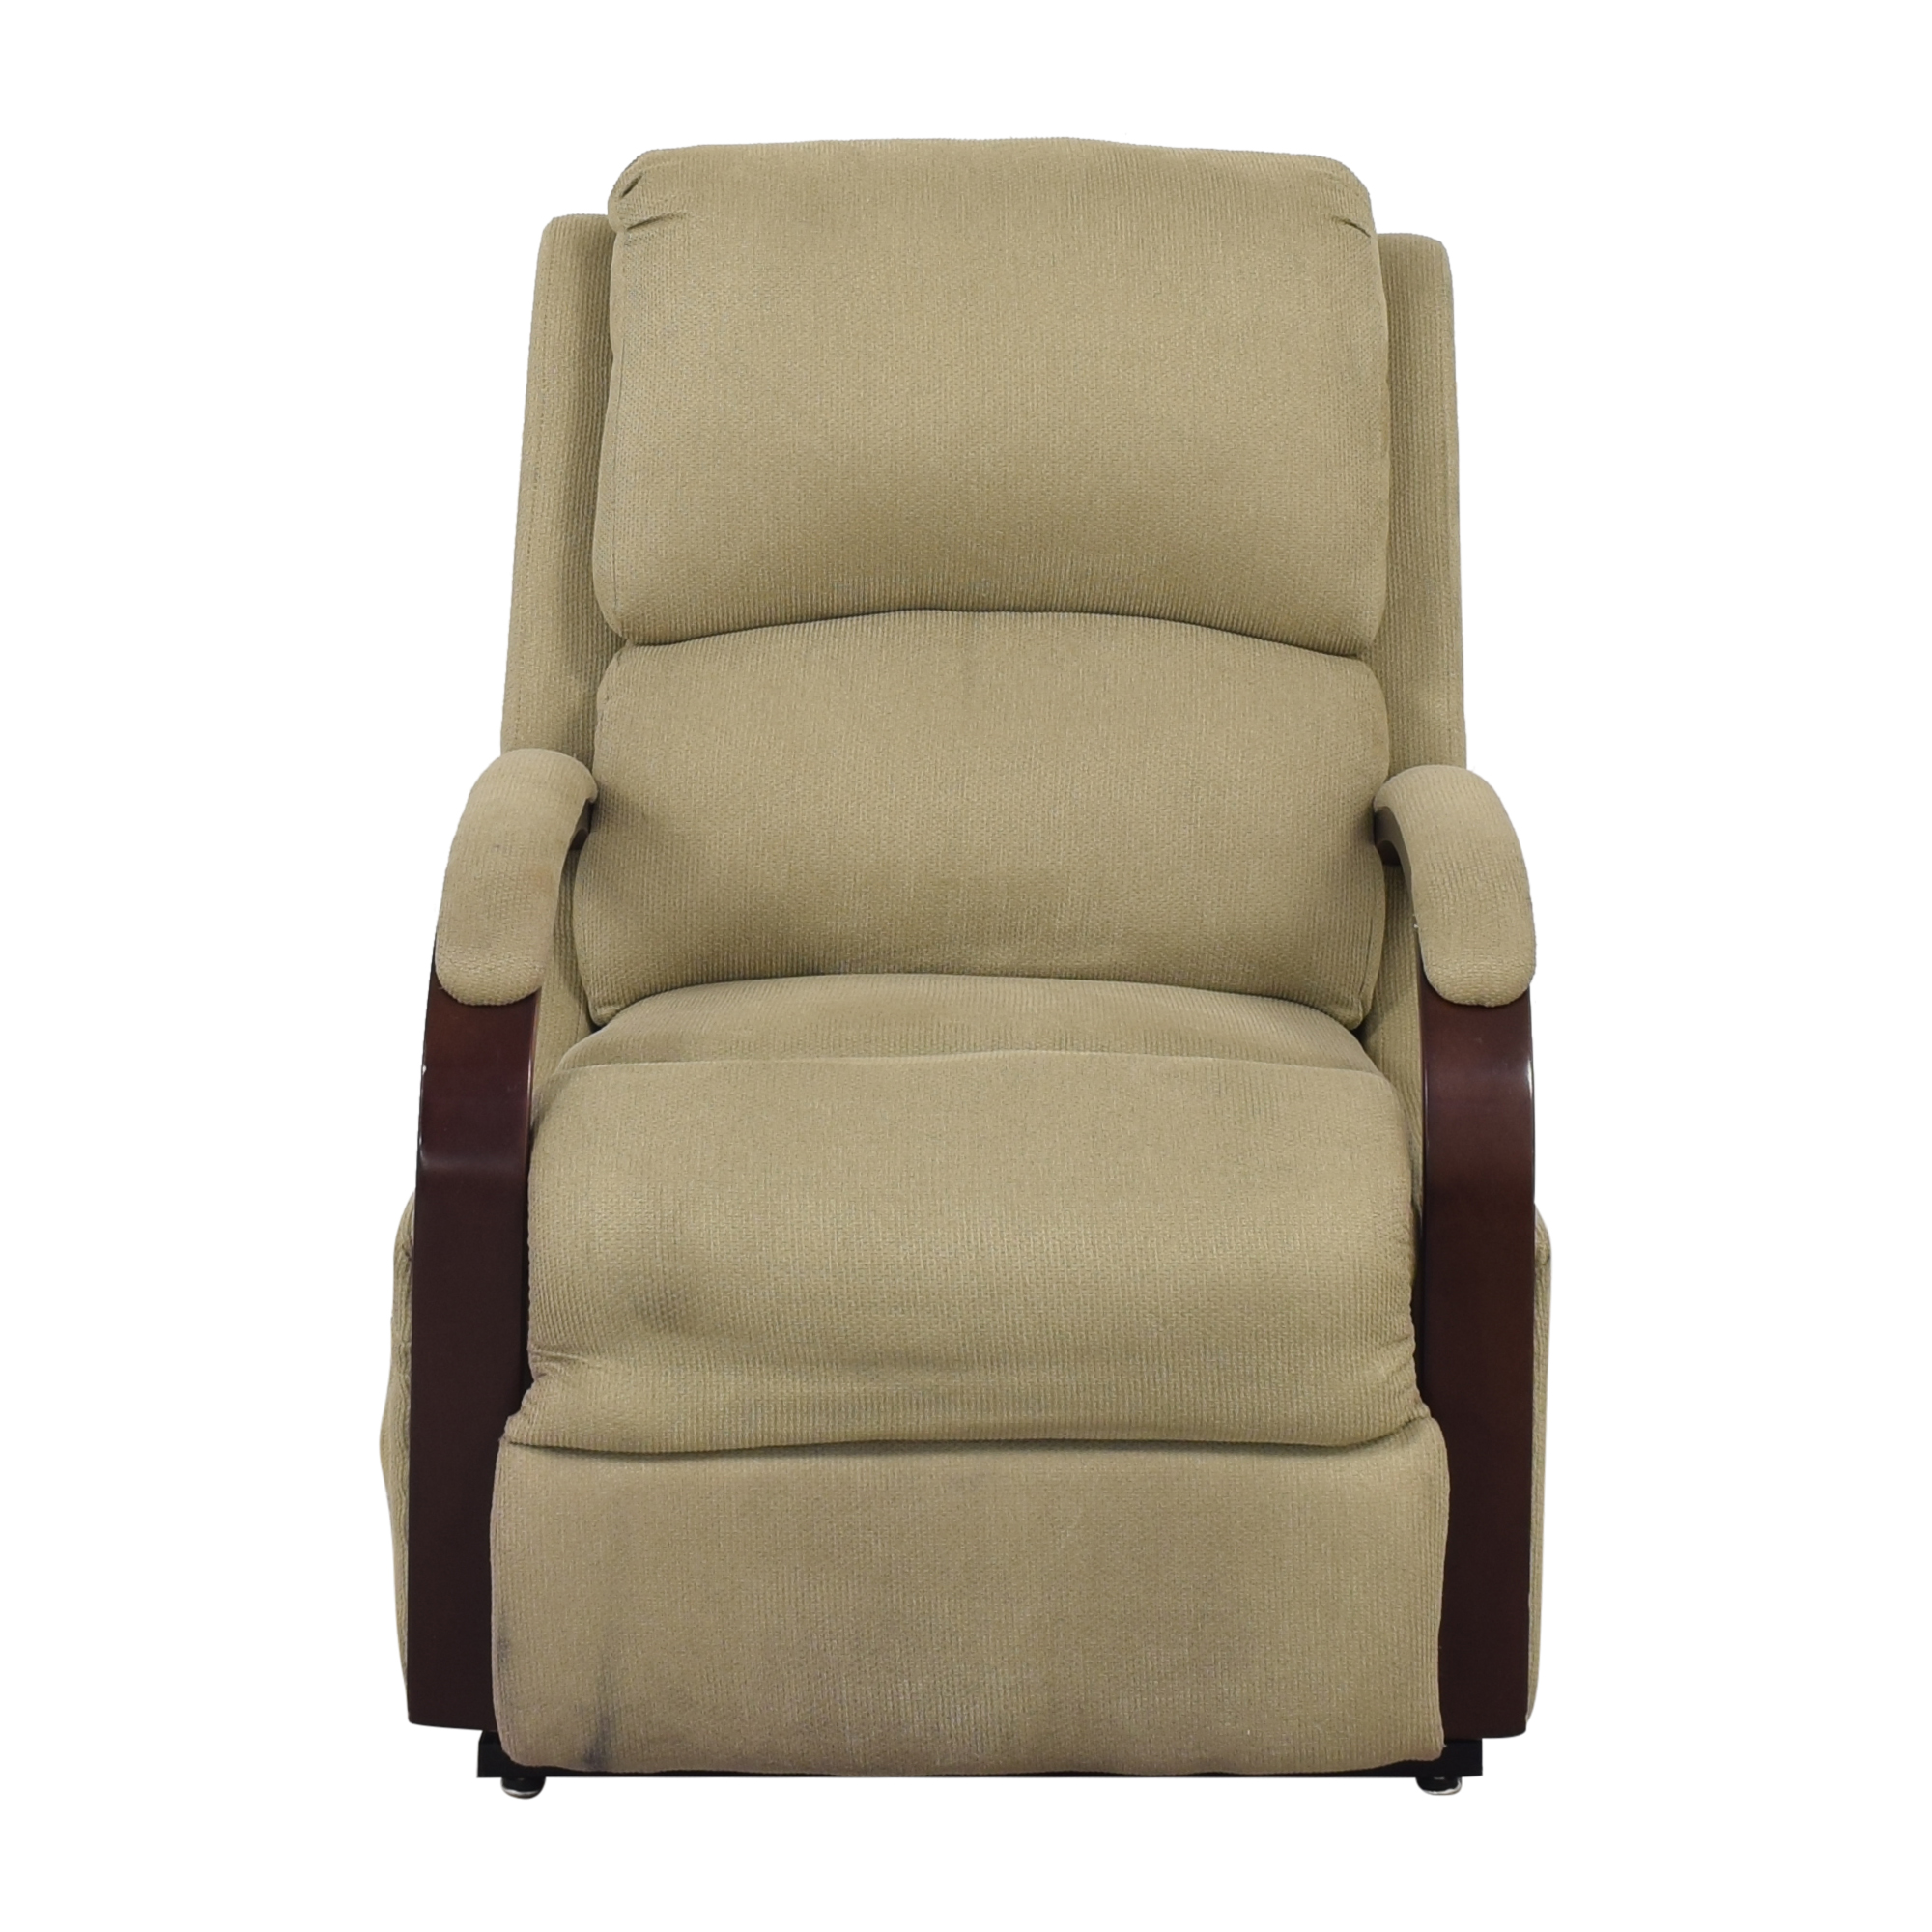 Macy's Macy's Power Lift Recliner Chair ma